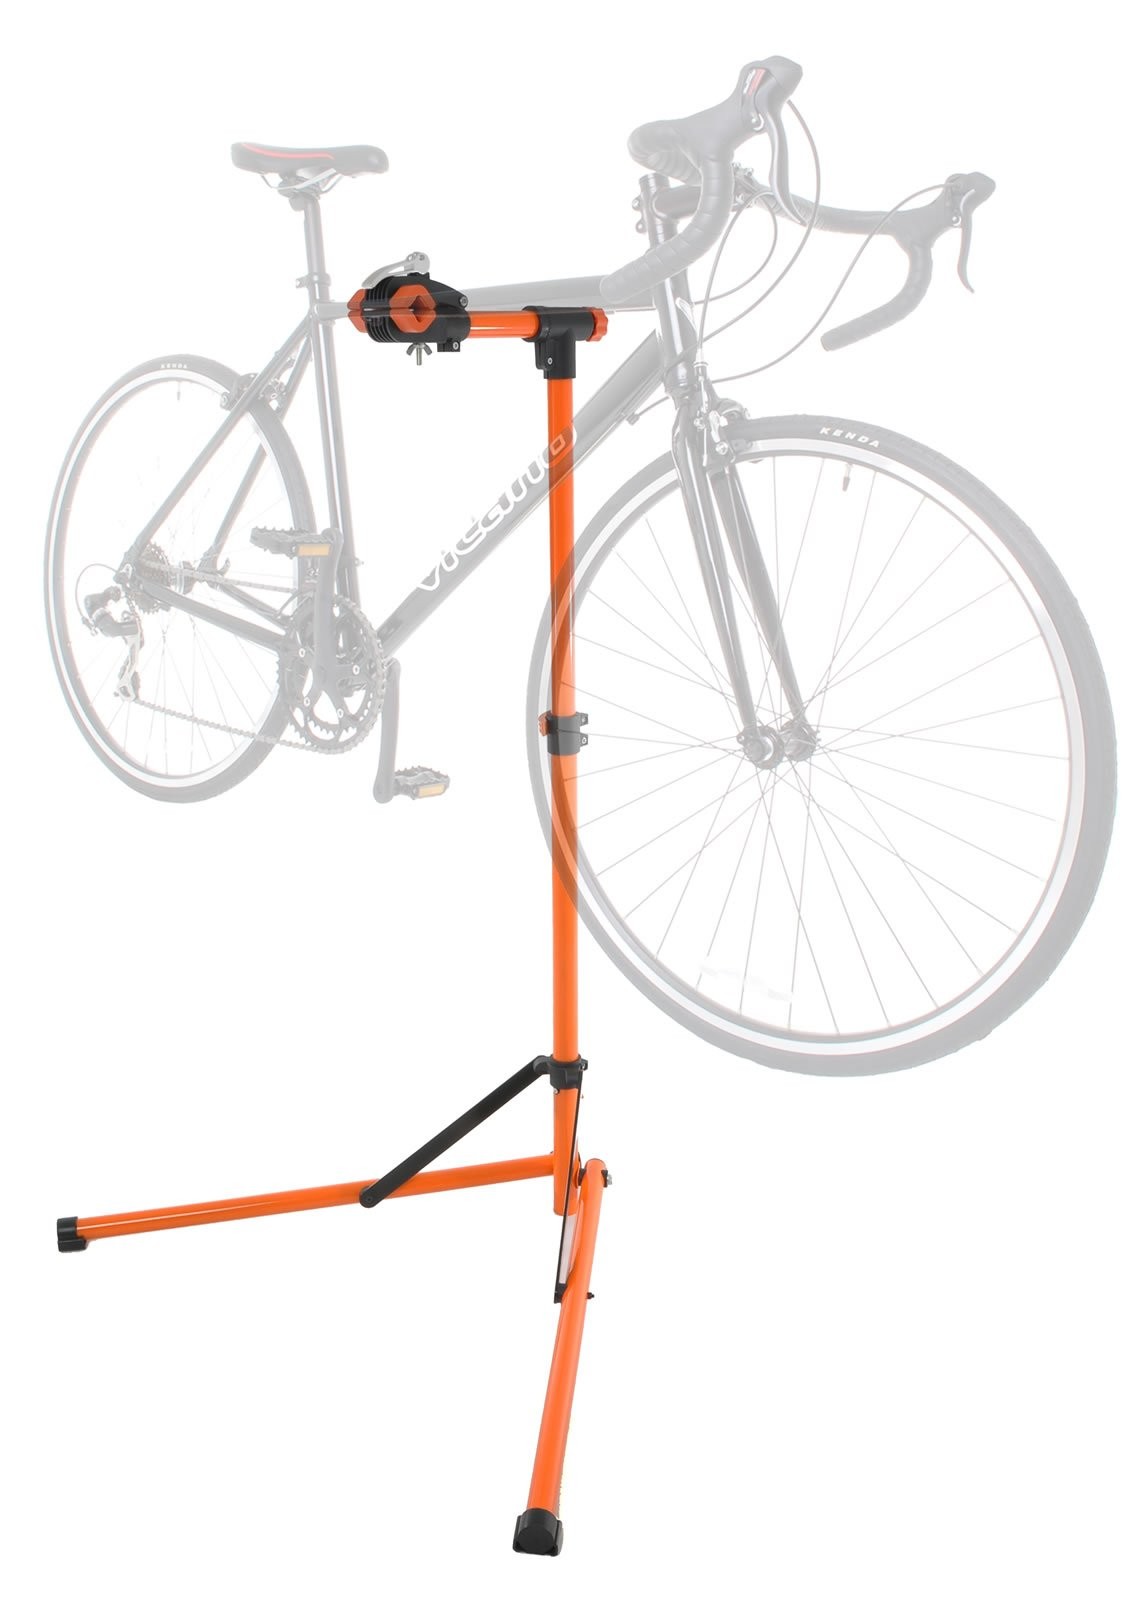 PRO Portable Mechanic Bike Repair Stand Bicycle Workstand by Conquer (Image #1)